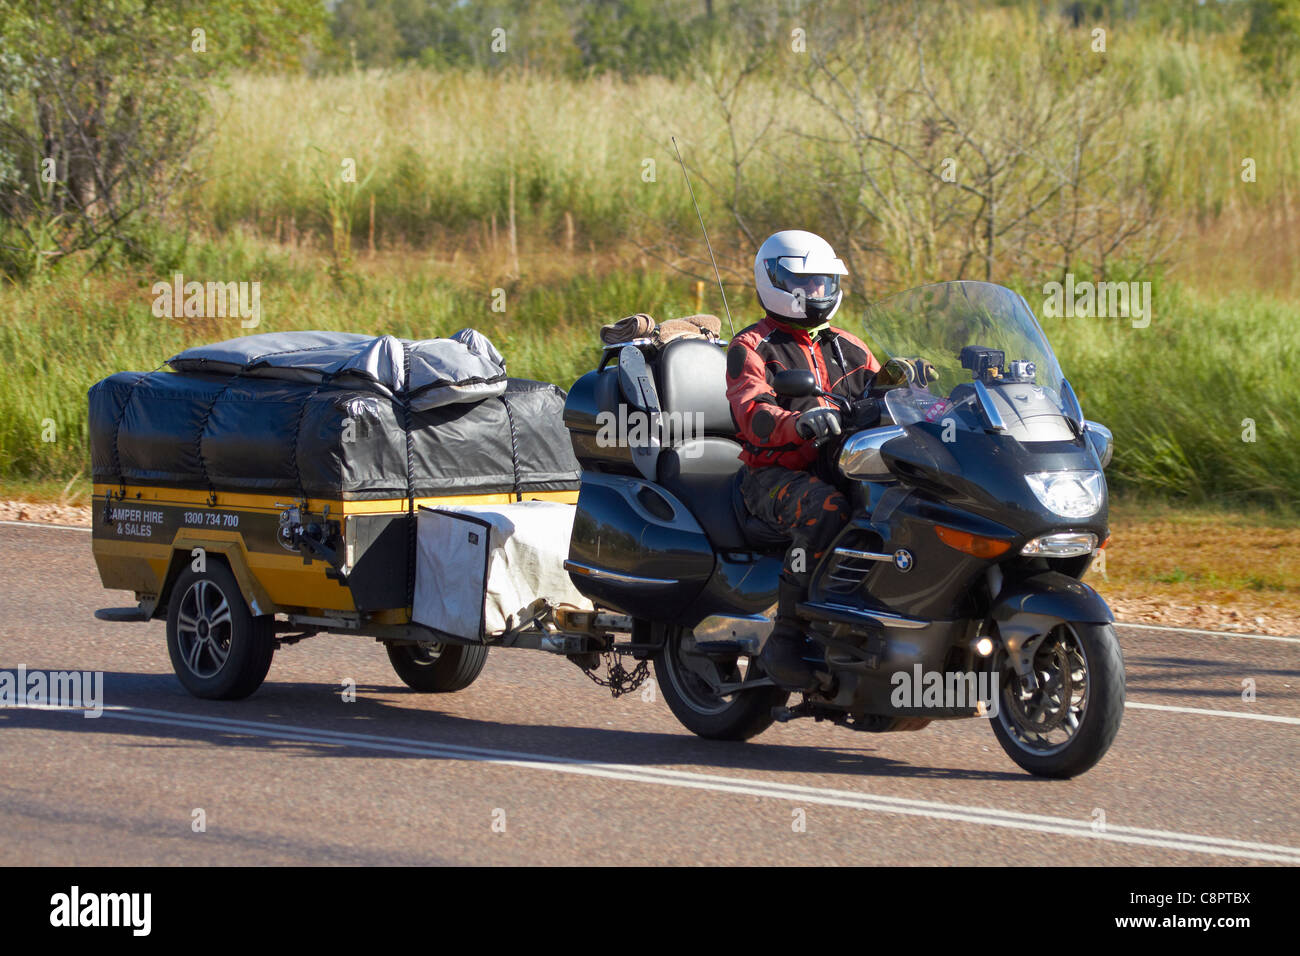 Bmw Touring Bike And Trailer On Stuart Highway Adelaide River Stock Photo Alamy